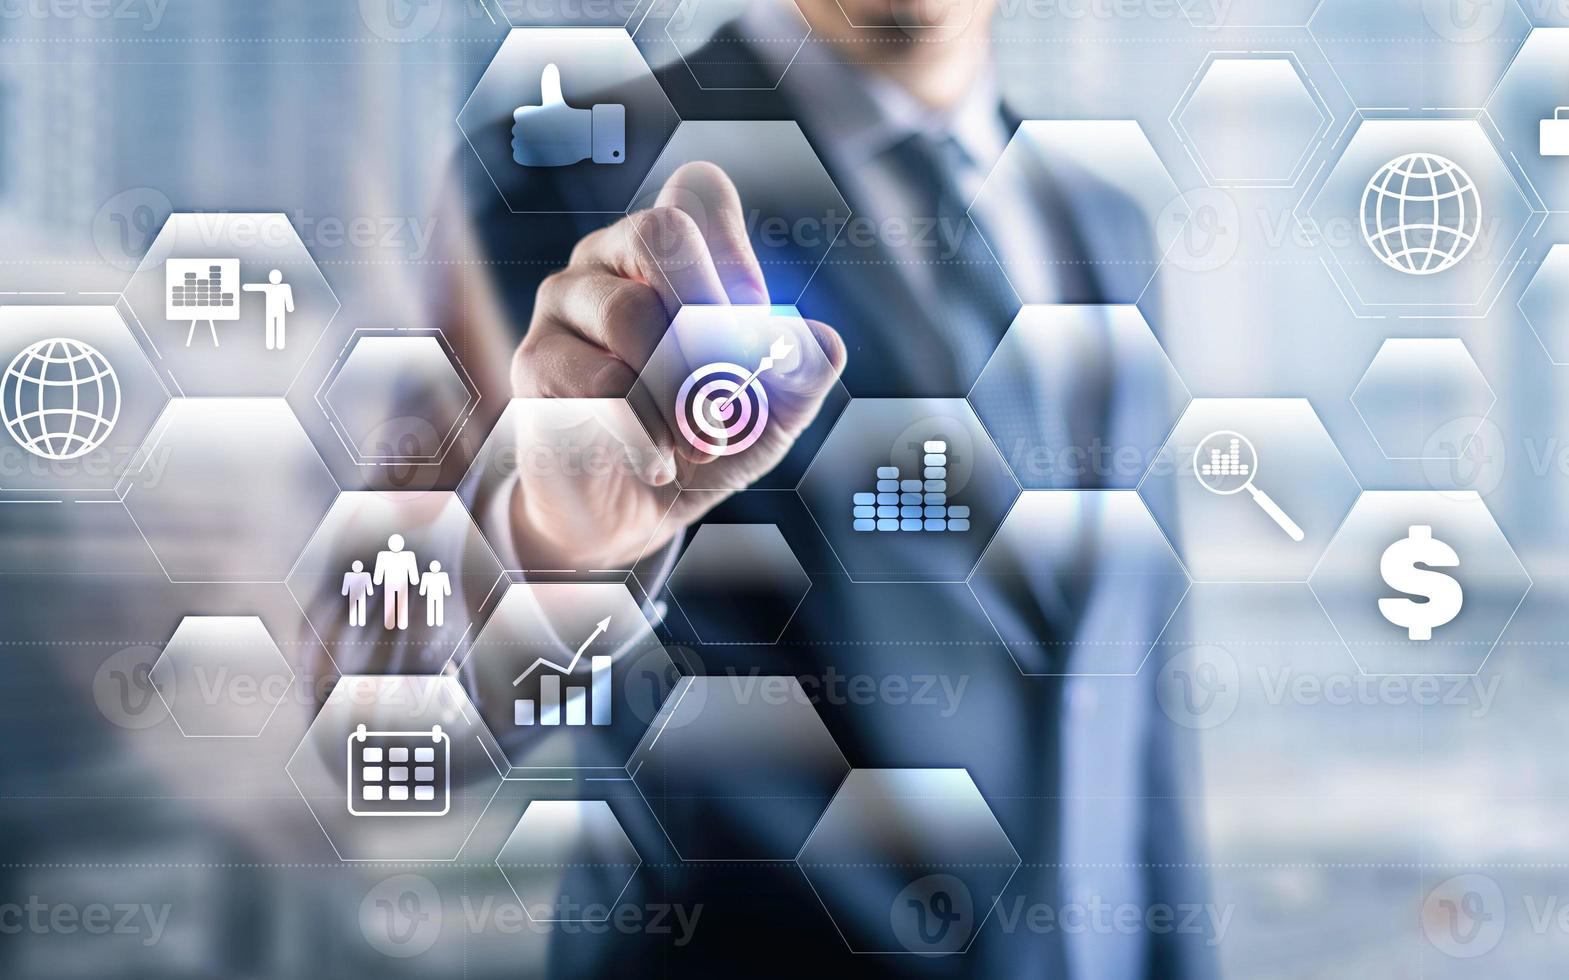 Data management system and business analytics concept on double exposure background photo